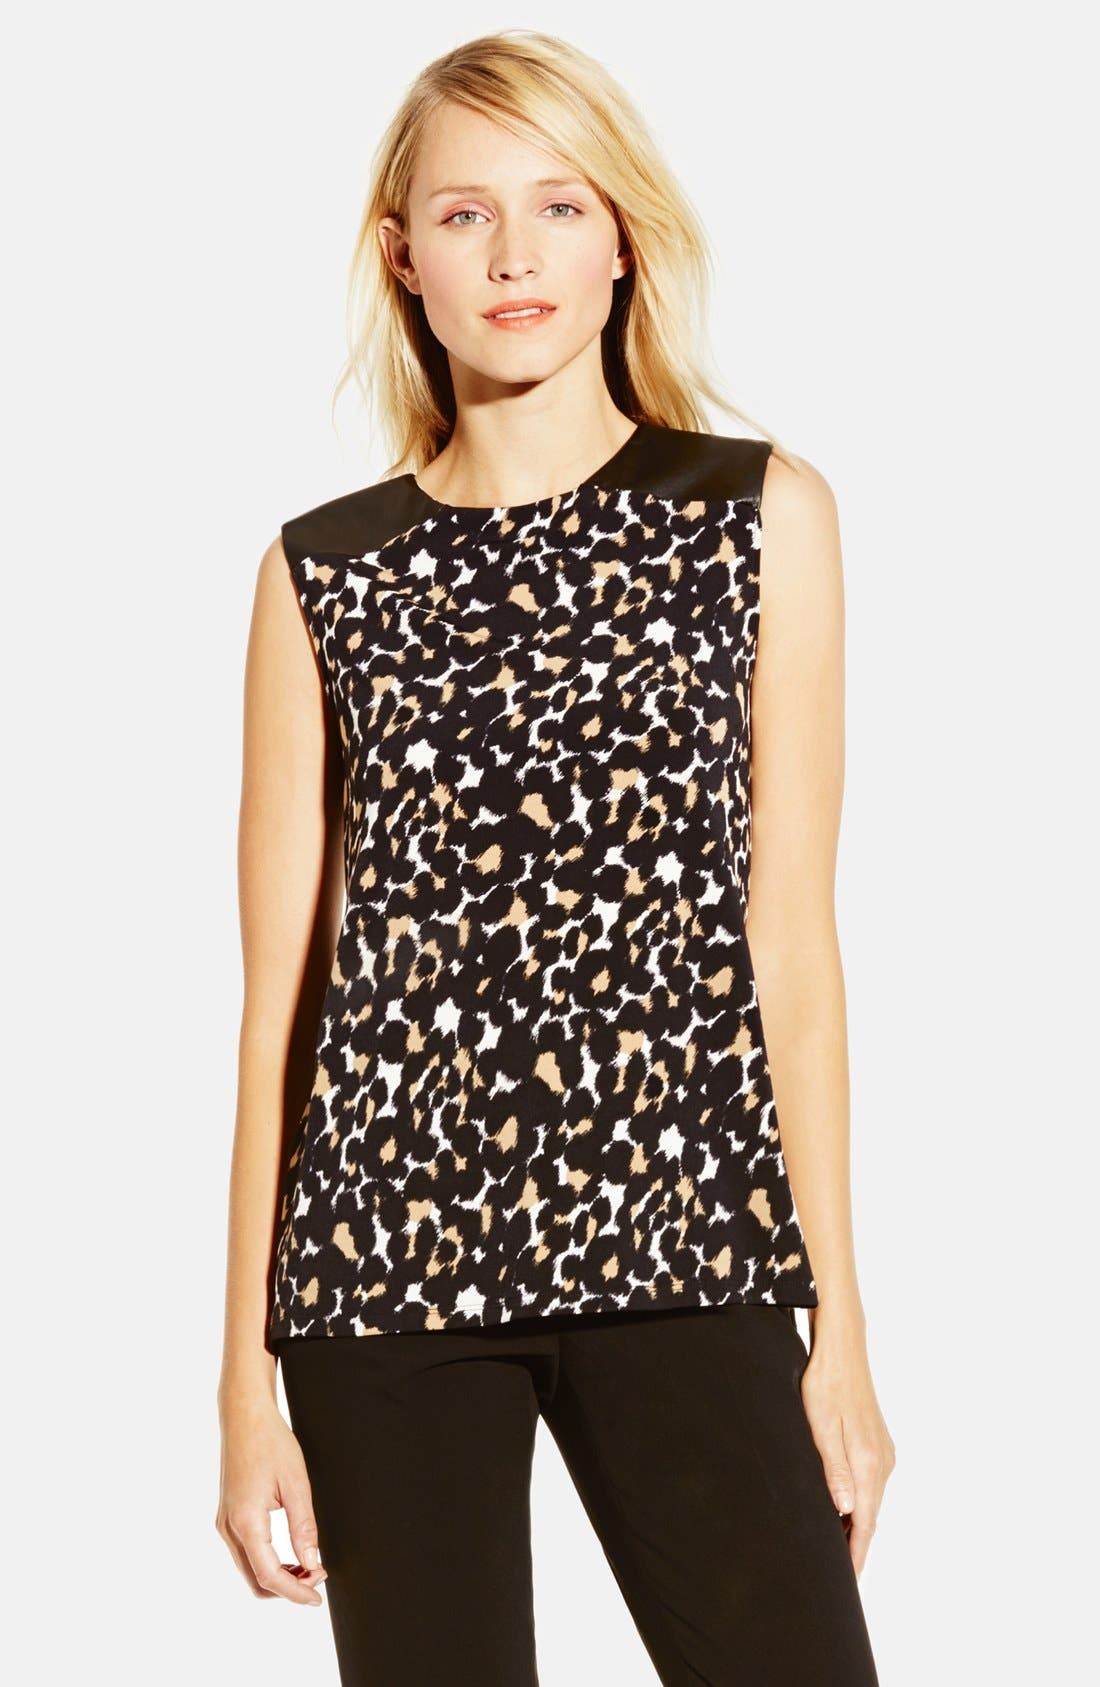 Alternate Image 1 Selected - Vince Camuto Faux Leather Trim Print High/Low Top